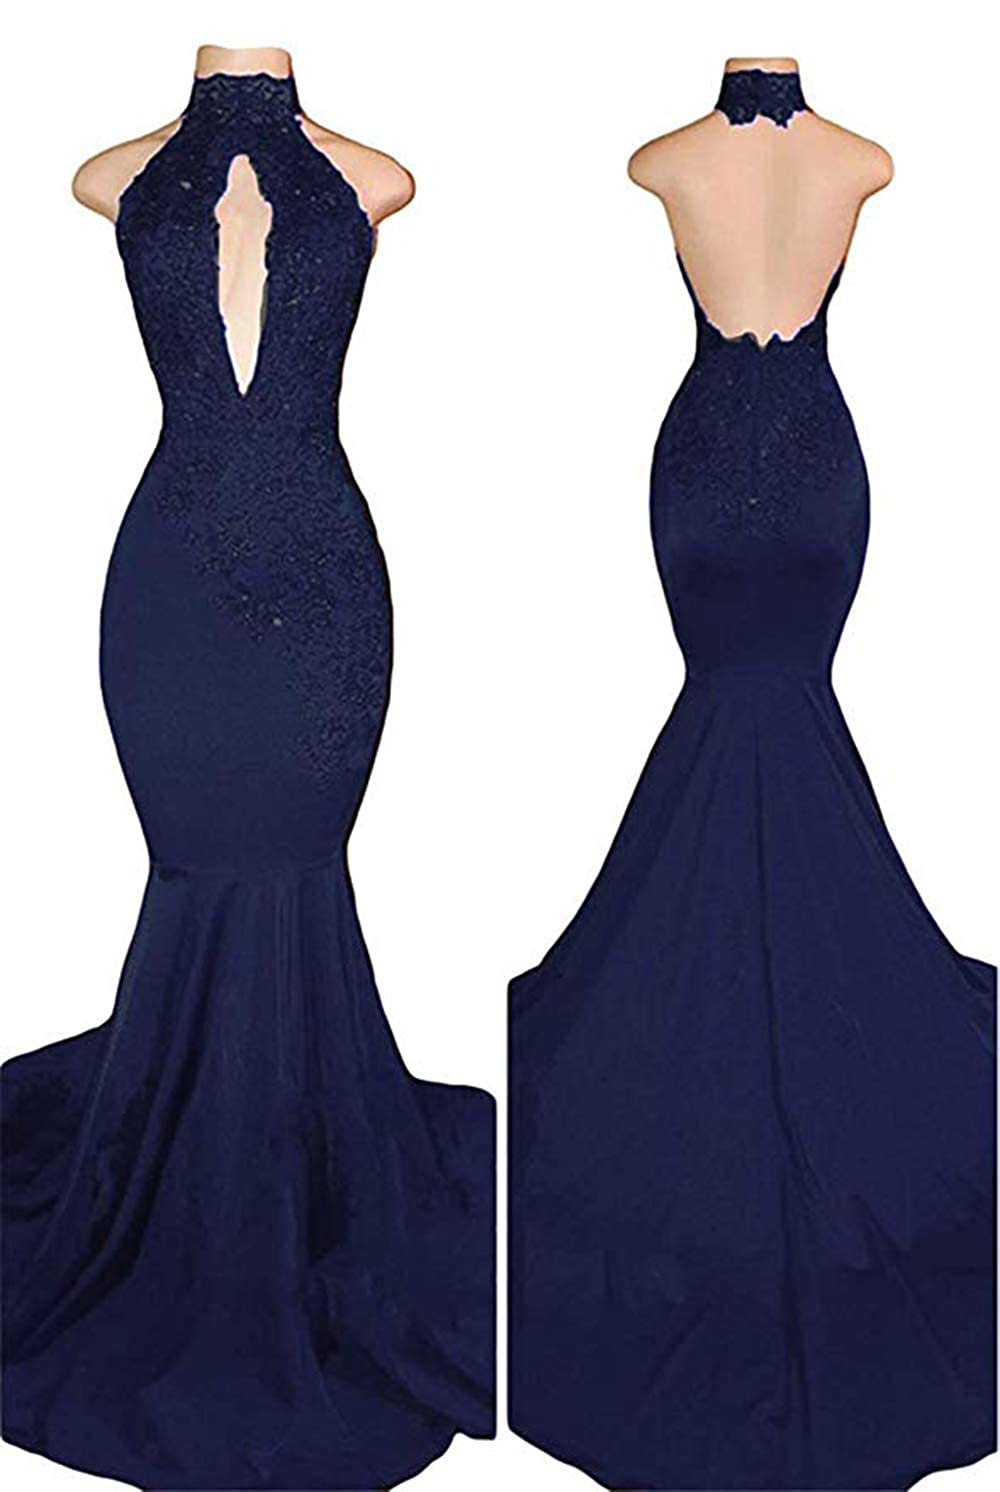 Navy bluee Women's Sexy Halter Mermaid Prom Dresses Lace Appliques 2019 Long Evening Gowns Formal Dresses